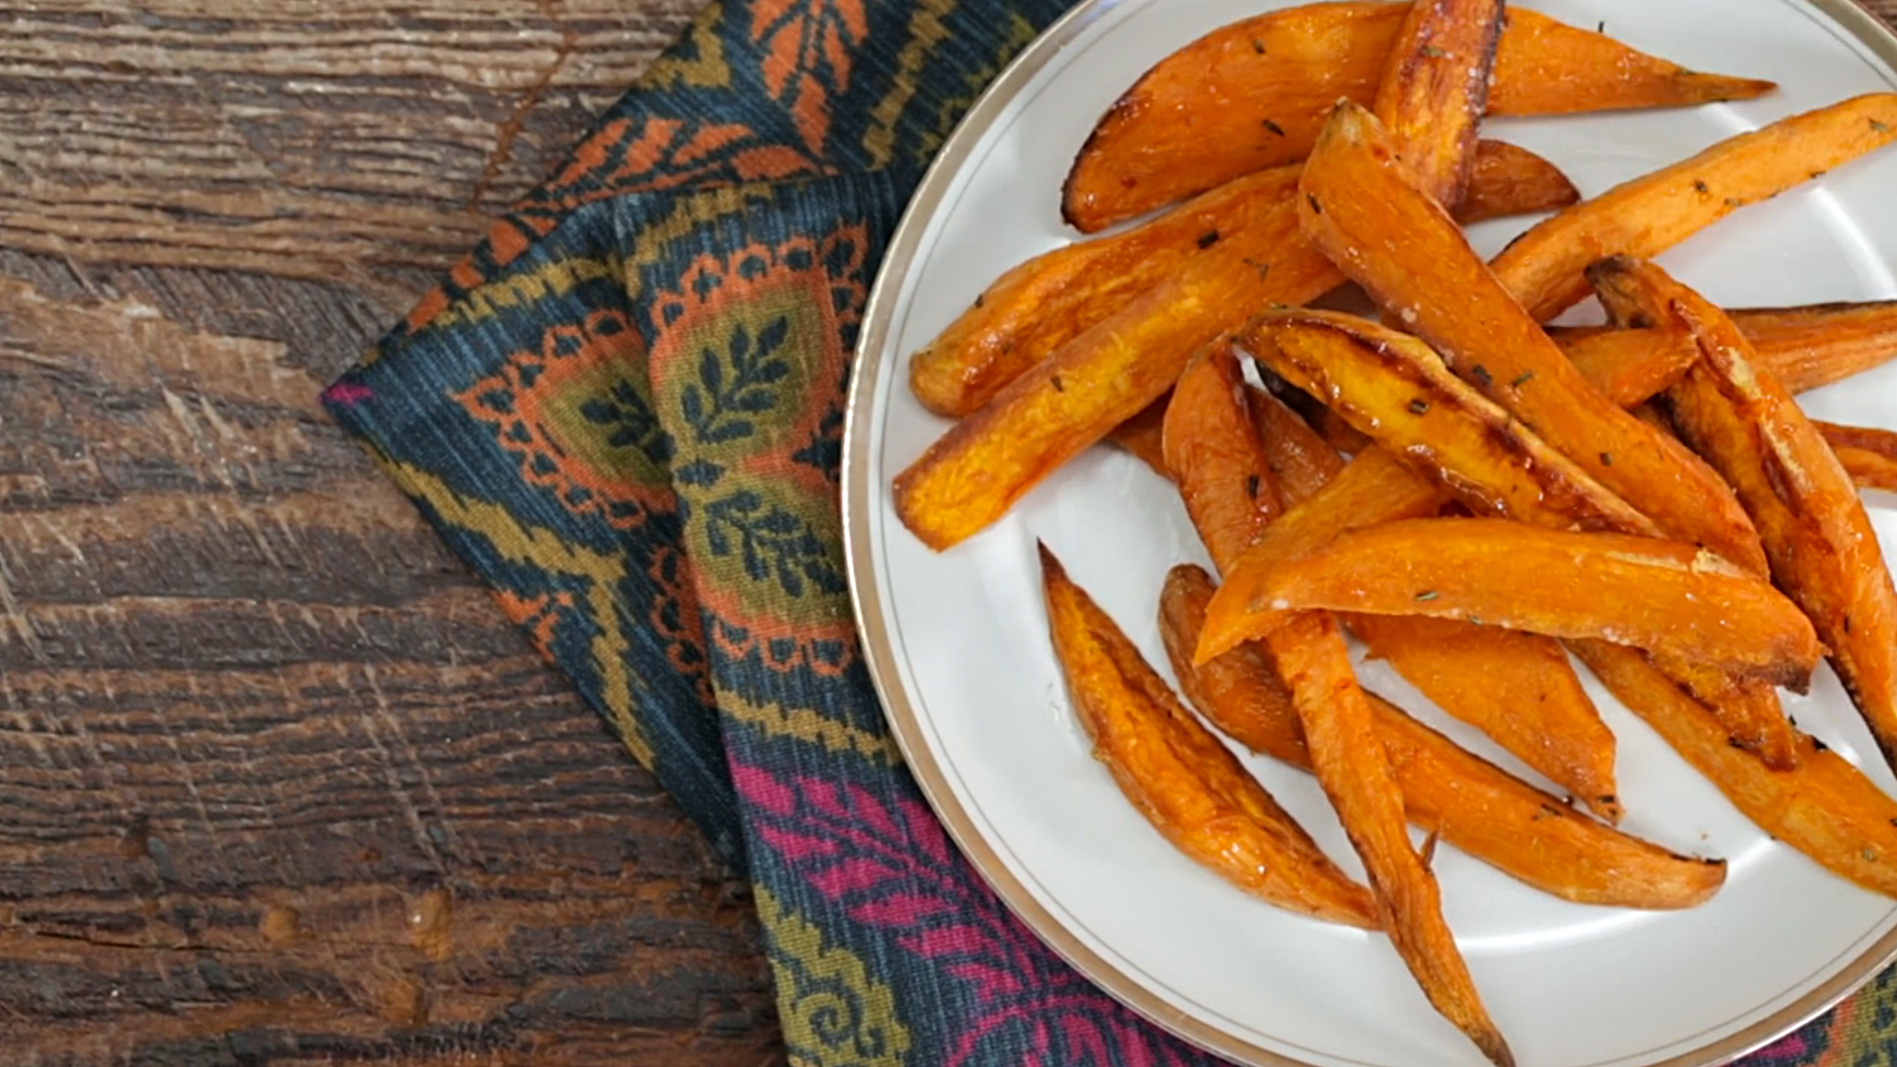 How to Make Oven-Roasted Sweet Potato Wedges